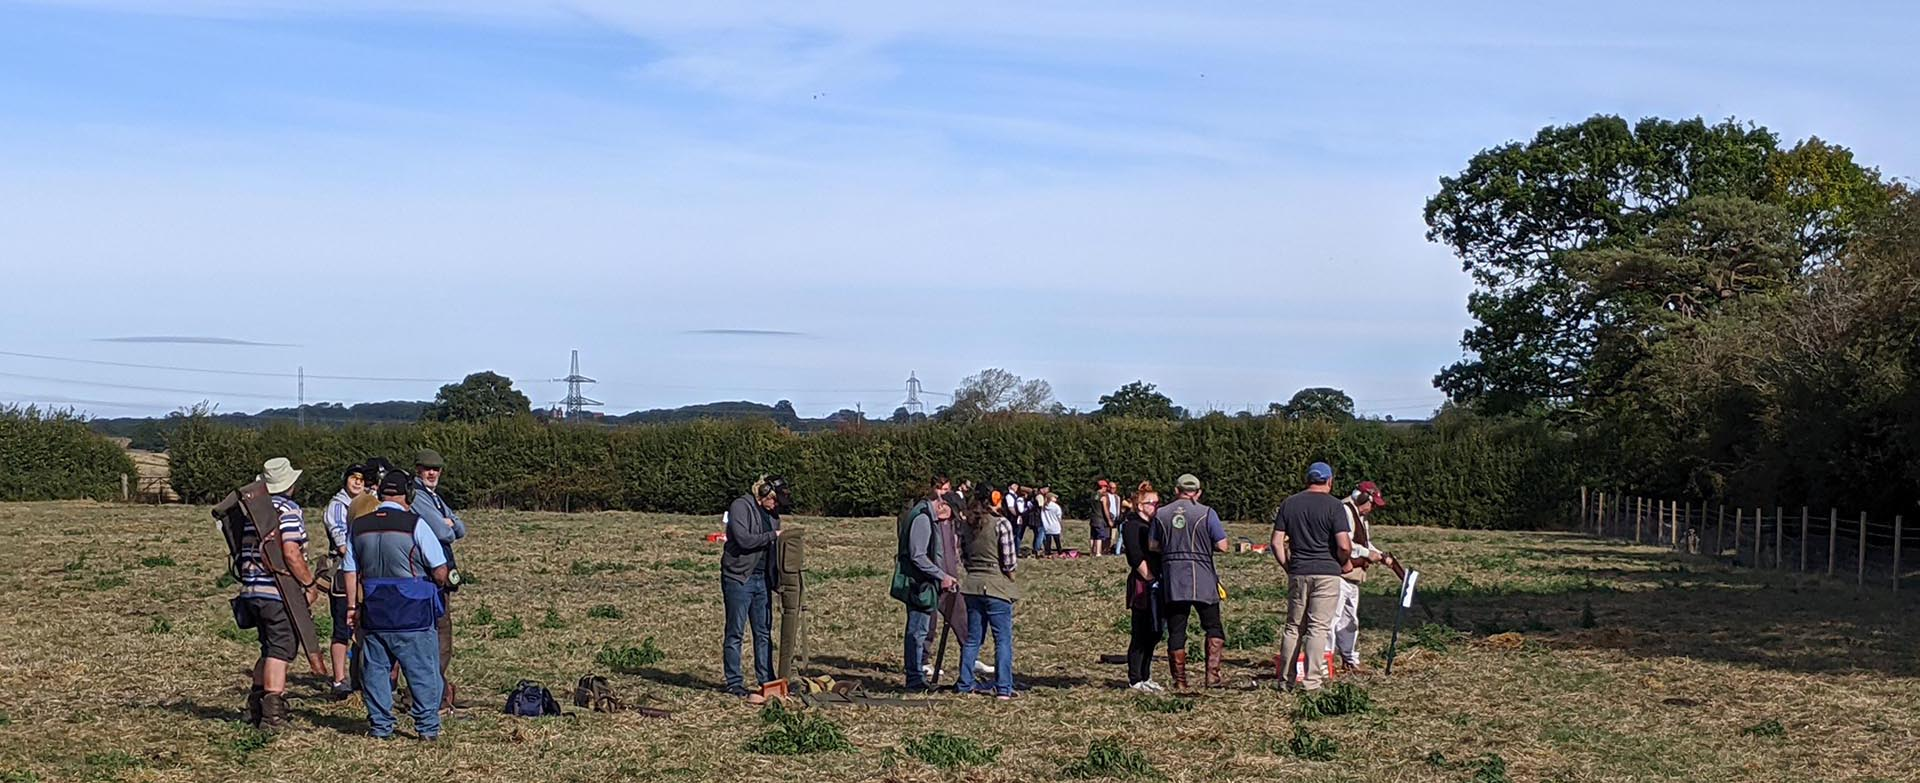 Quainton shooting ground September 15th 2019